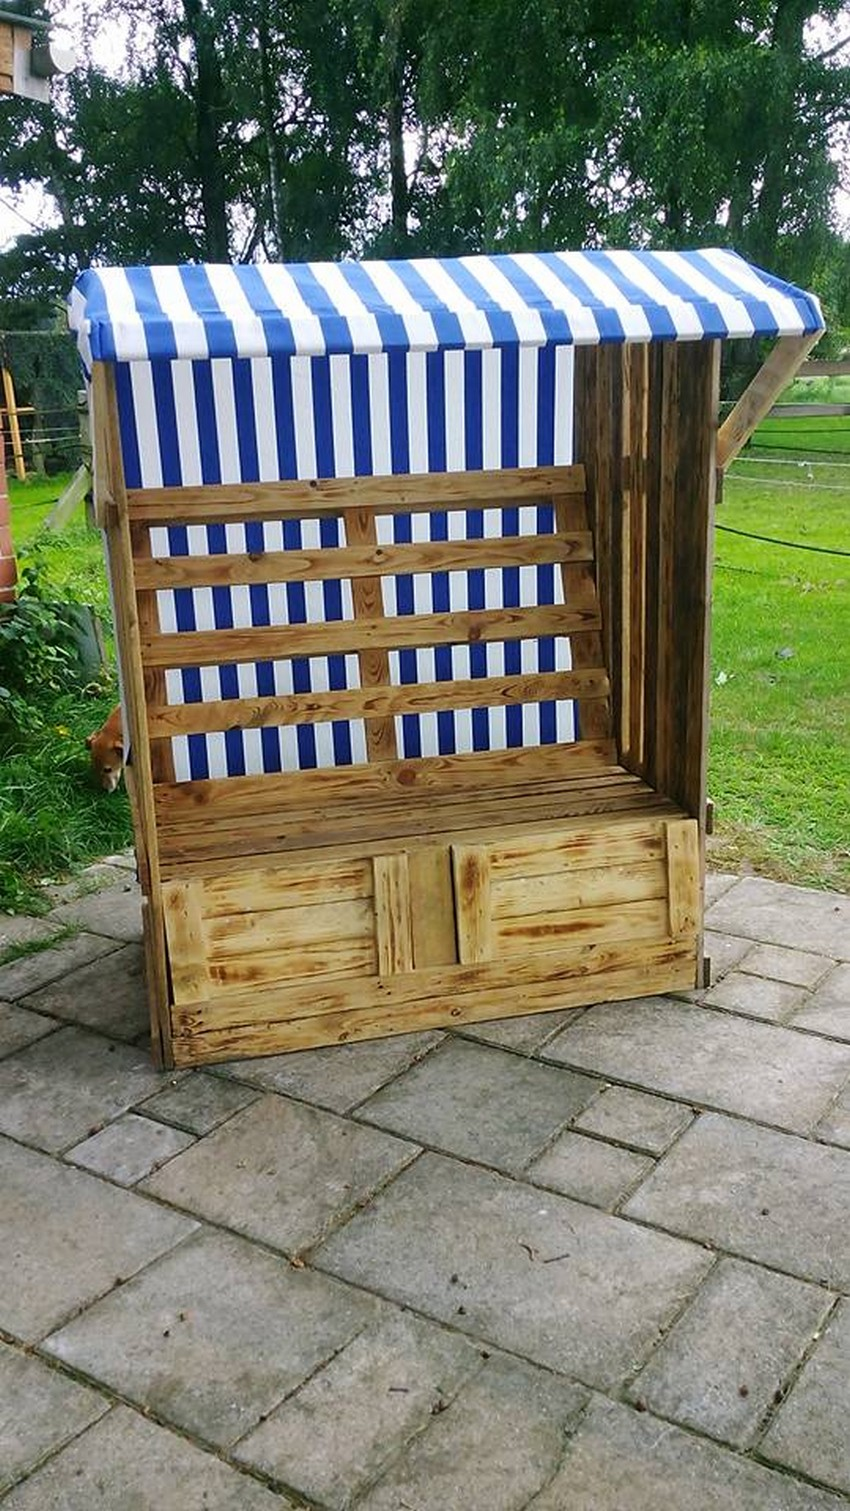 recycled pallet strandkorb chair